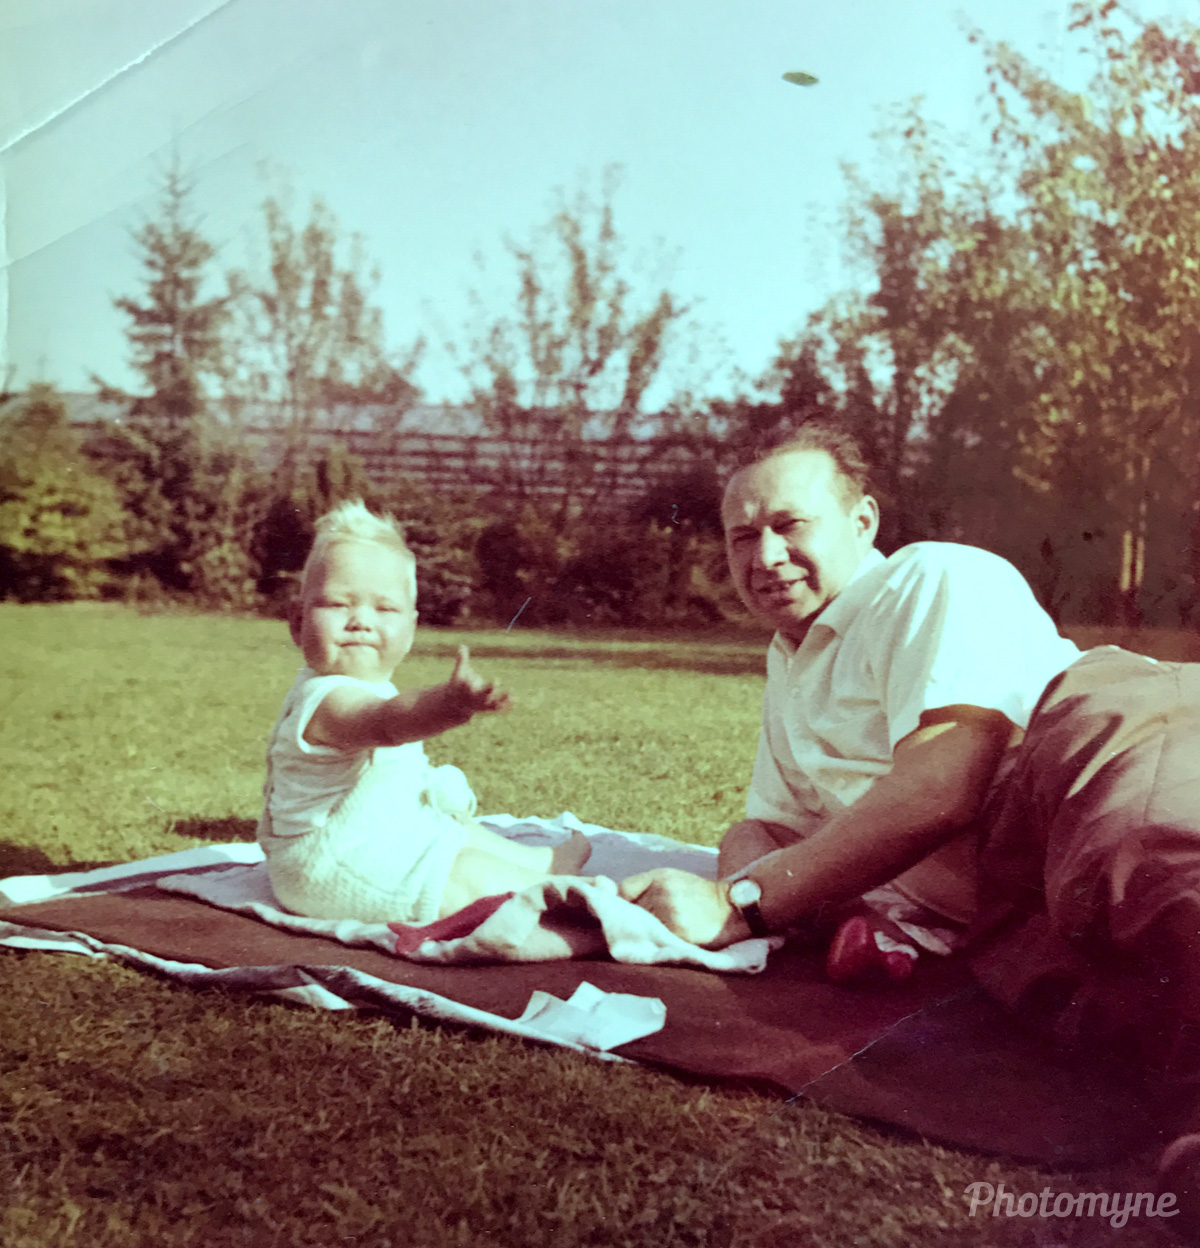 me and my father, Giesenkirchen, Nordrhein-Westfalen, Germany, 1962